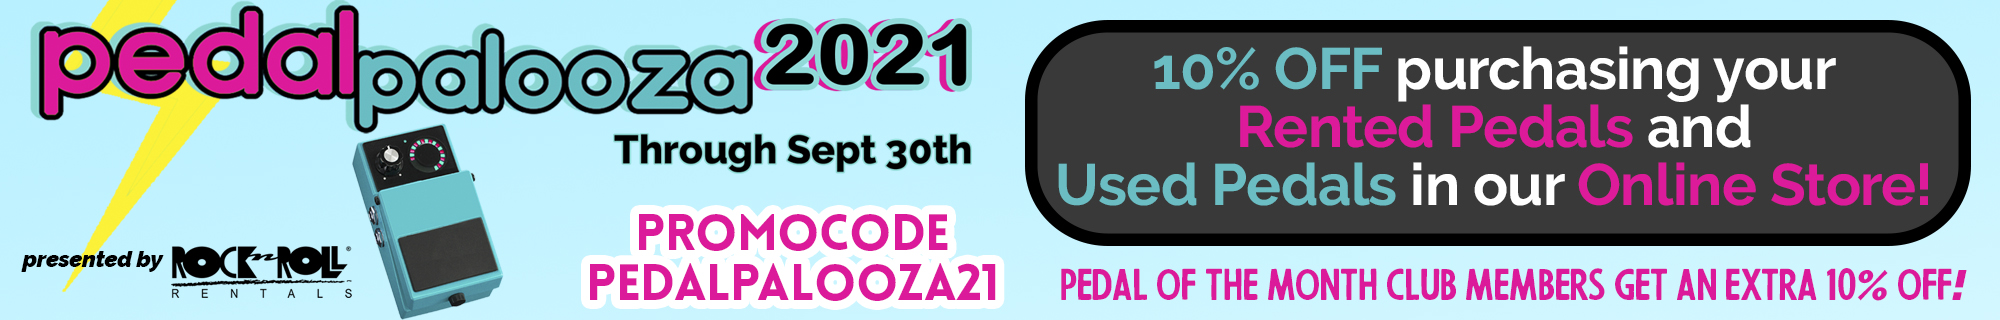 Pedalpalooza Used and New FX Pedals Sale September 2021